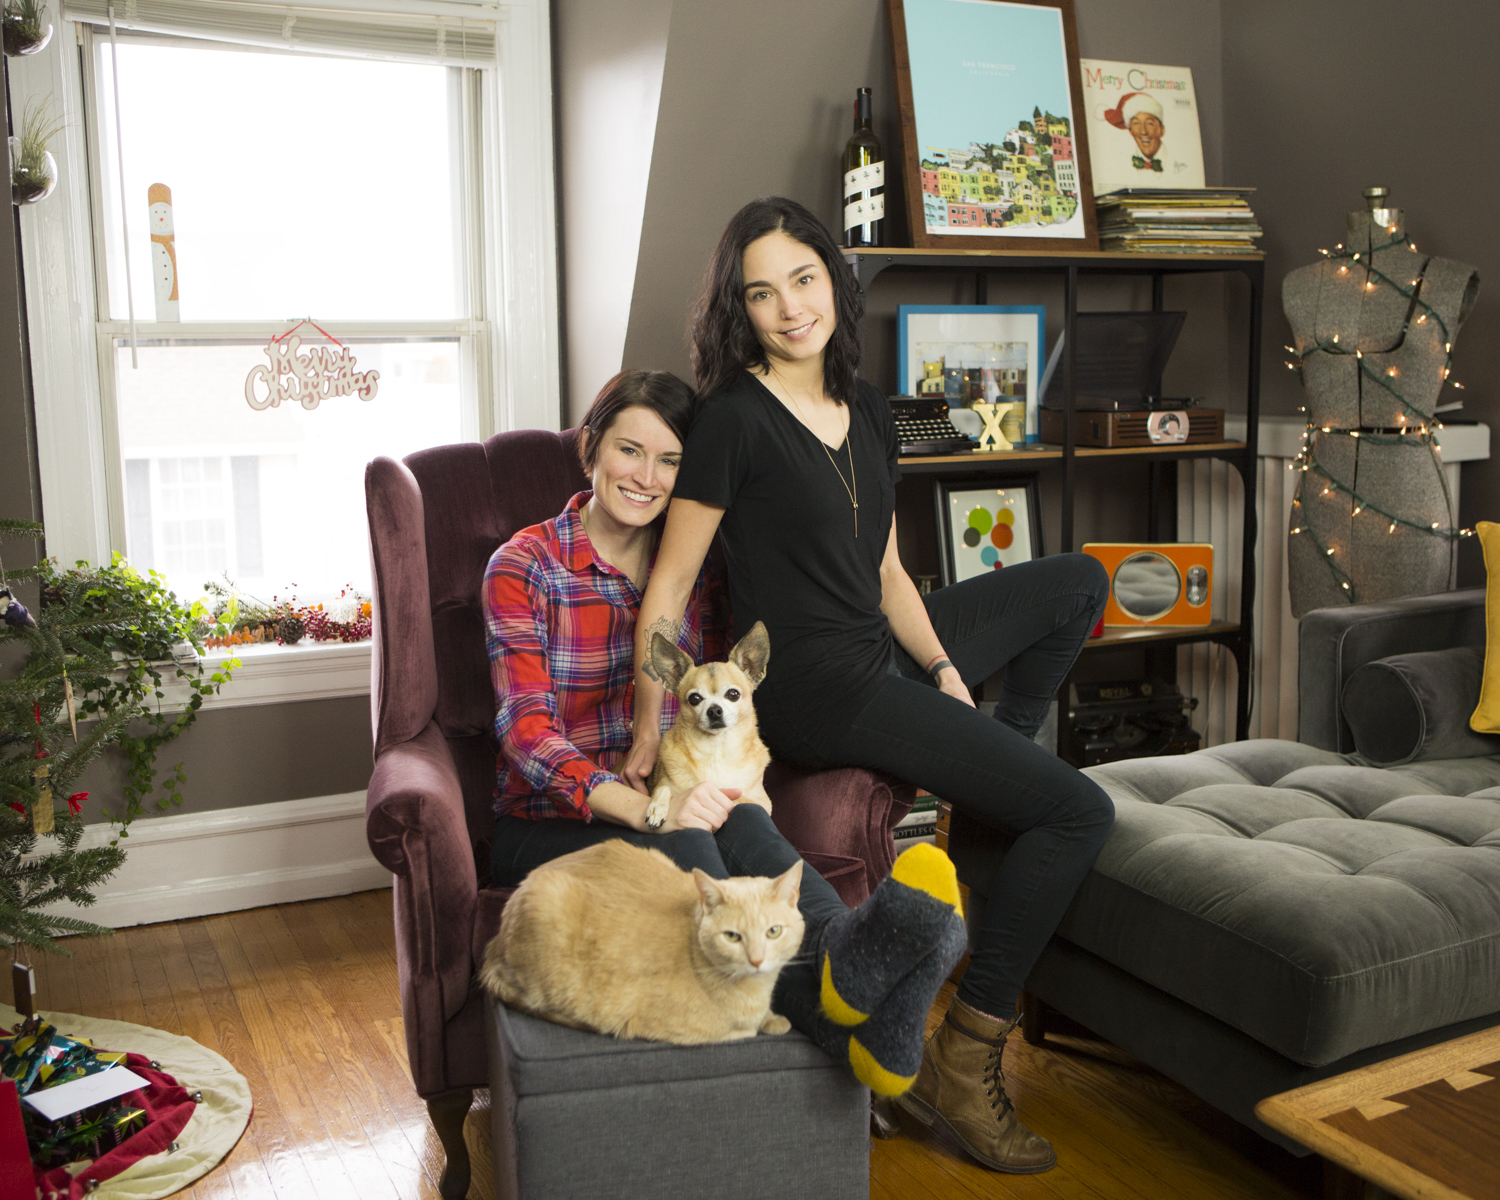 Some of us have family members that shed a lot! I love this sweet couple's space and having the chance to capture their environment with their beloved fur babies in it. Photographing in my client's home environment is one of my favorite things to do.